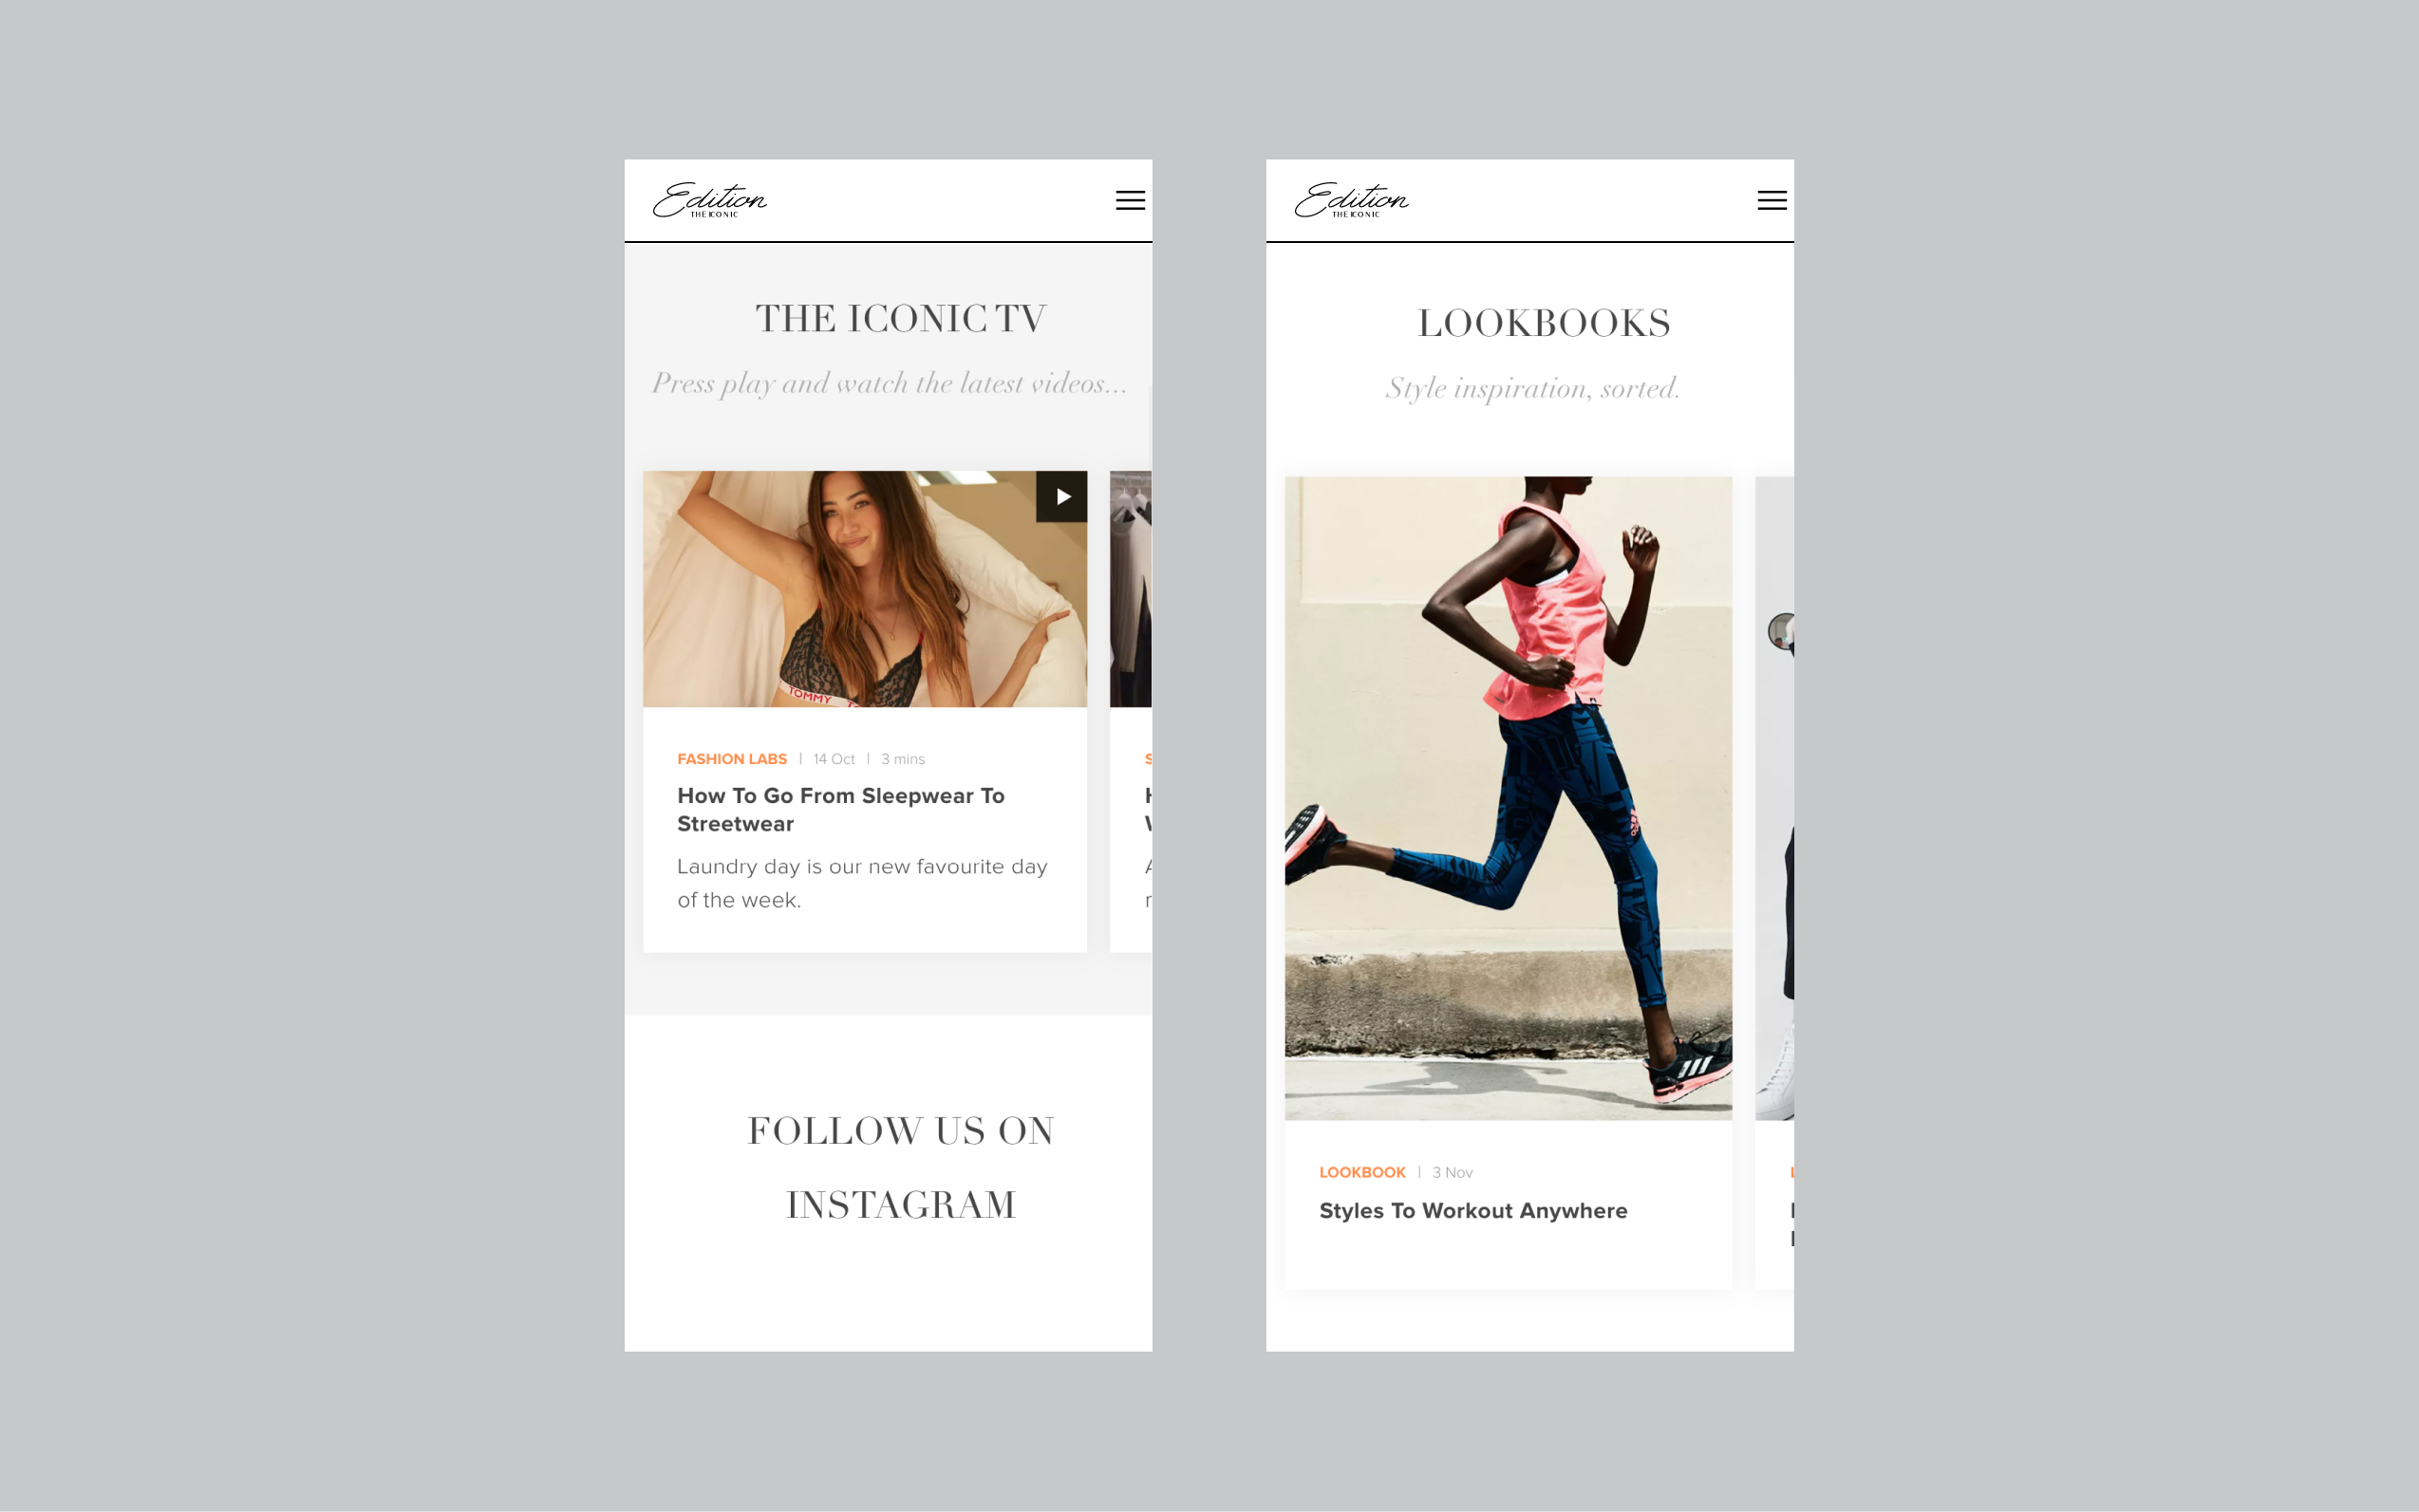 Edition by THE ICONIC new THE ICONIC TV and Lookbooks, two new media streams made possible with a headless CMS approacjh